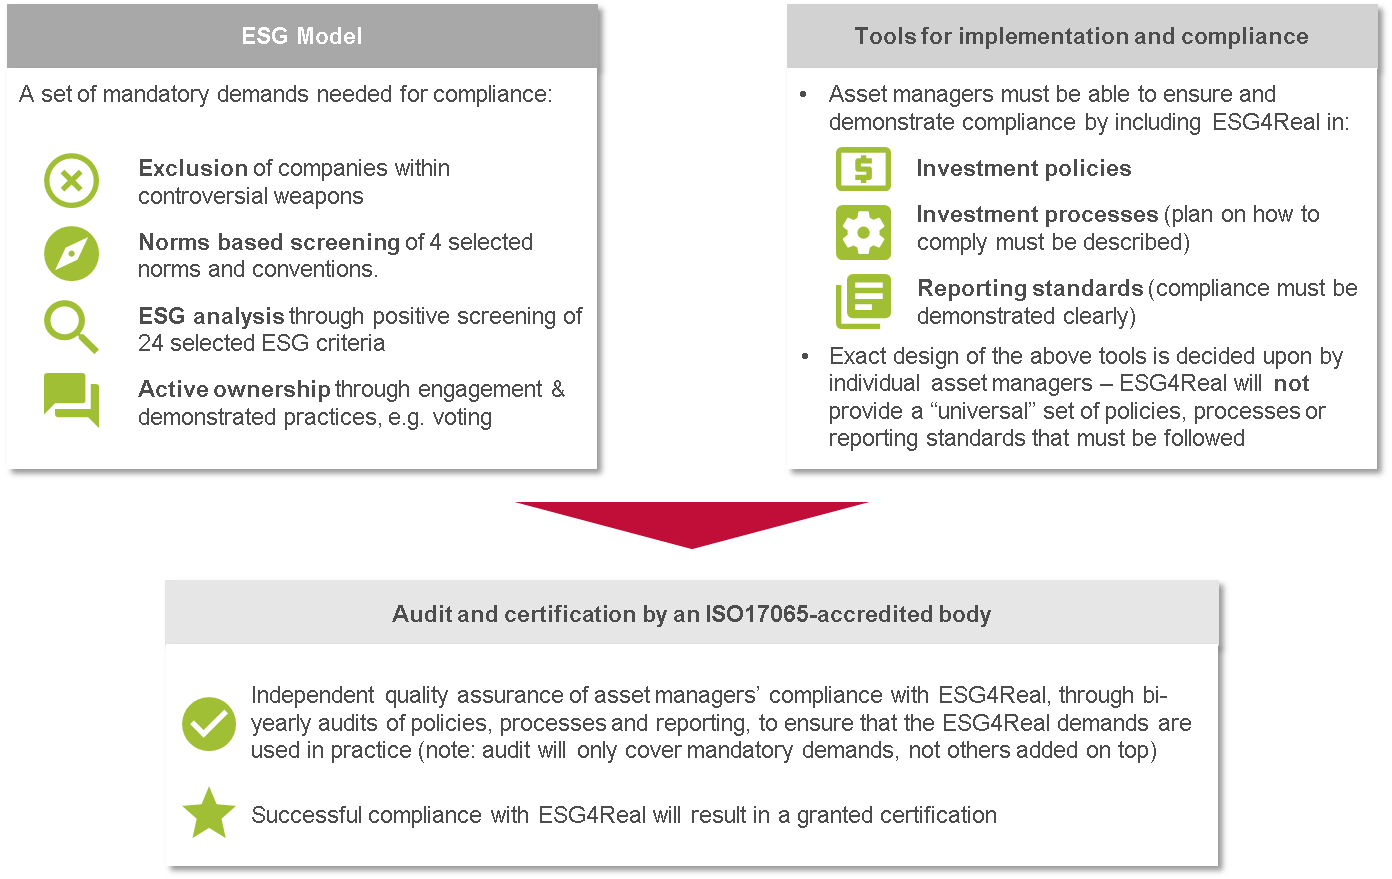 Illustration of the ESG4Real standard and its three main components: ESG-model, Tools for implementation and compliance, and Audit and certification by an ISO17065-accredited body